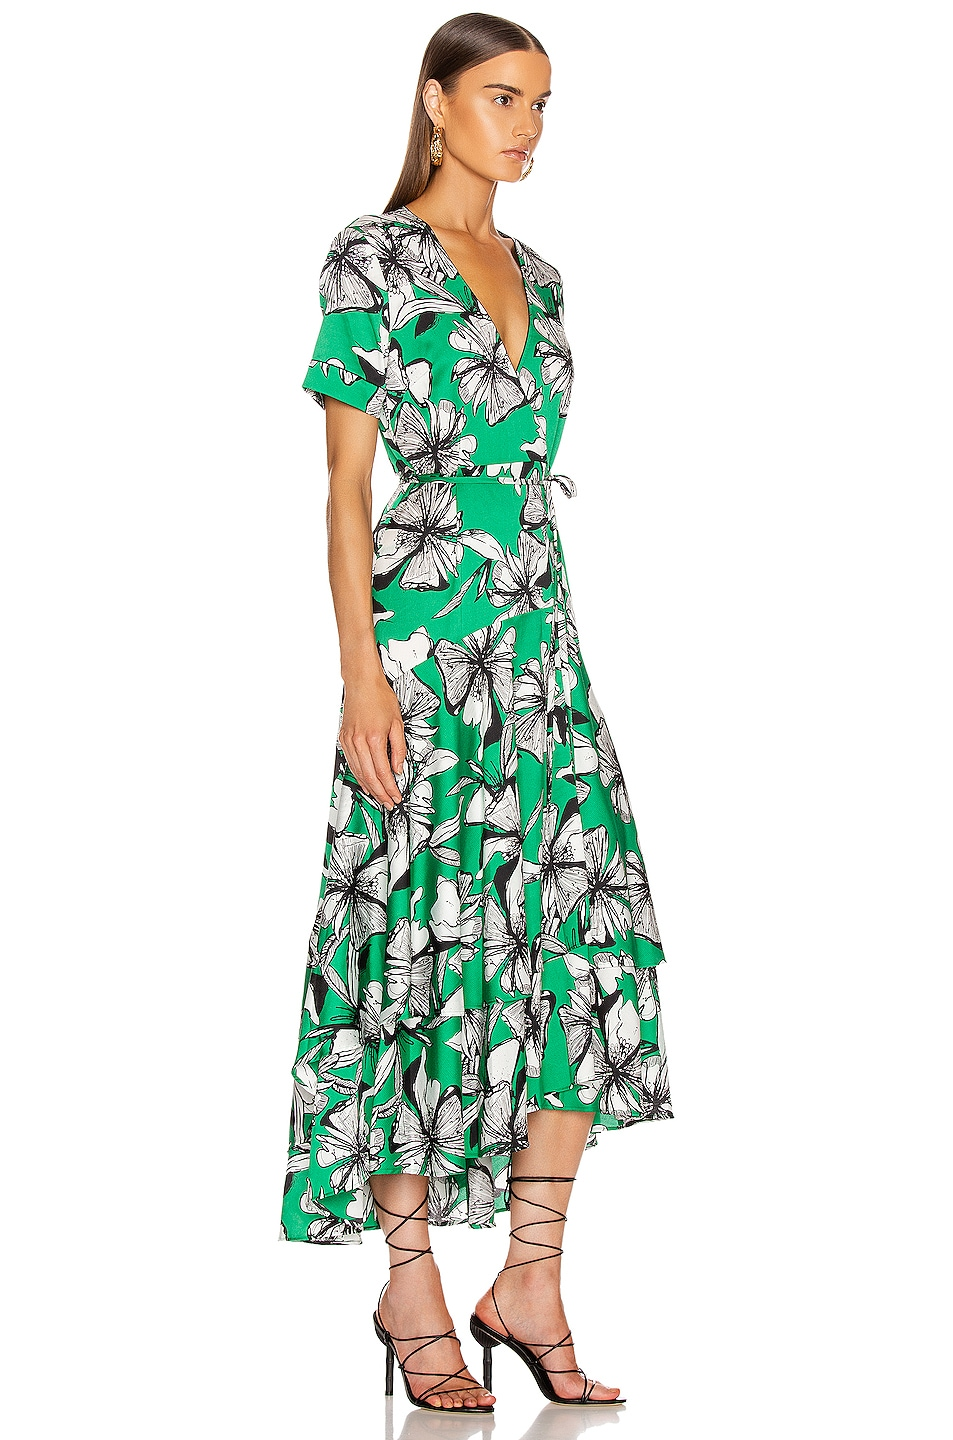 Image 2 of Alexis Deanna Dress in Emerald Floral